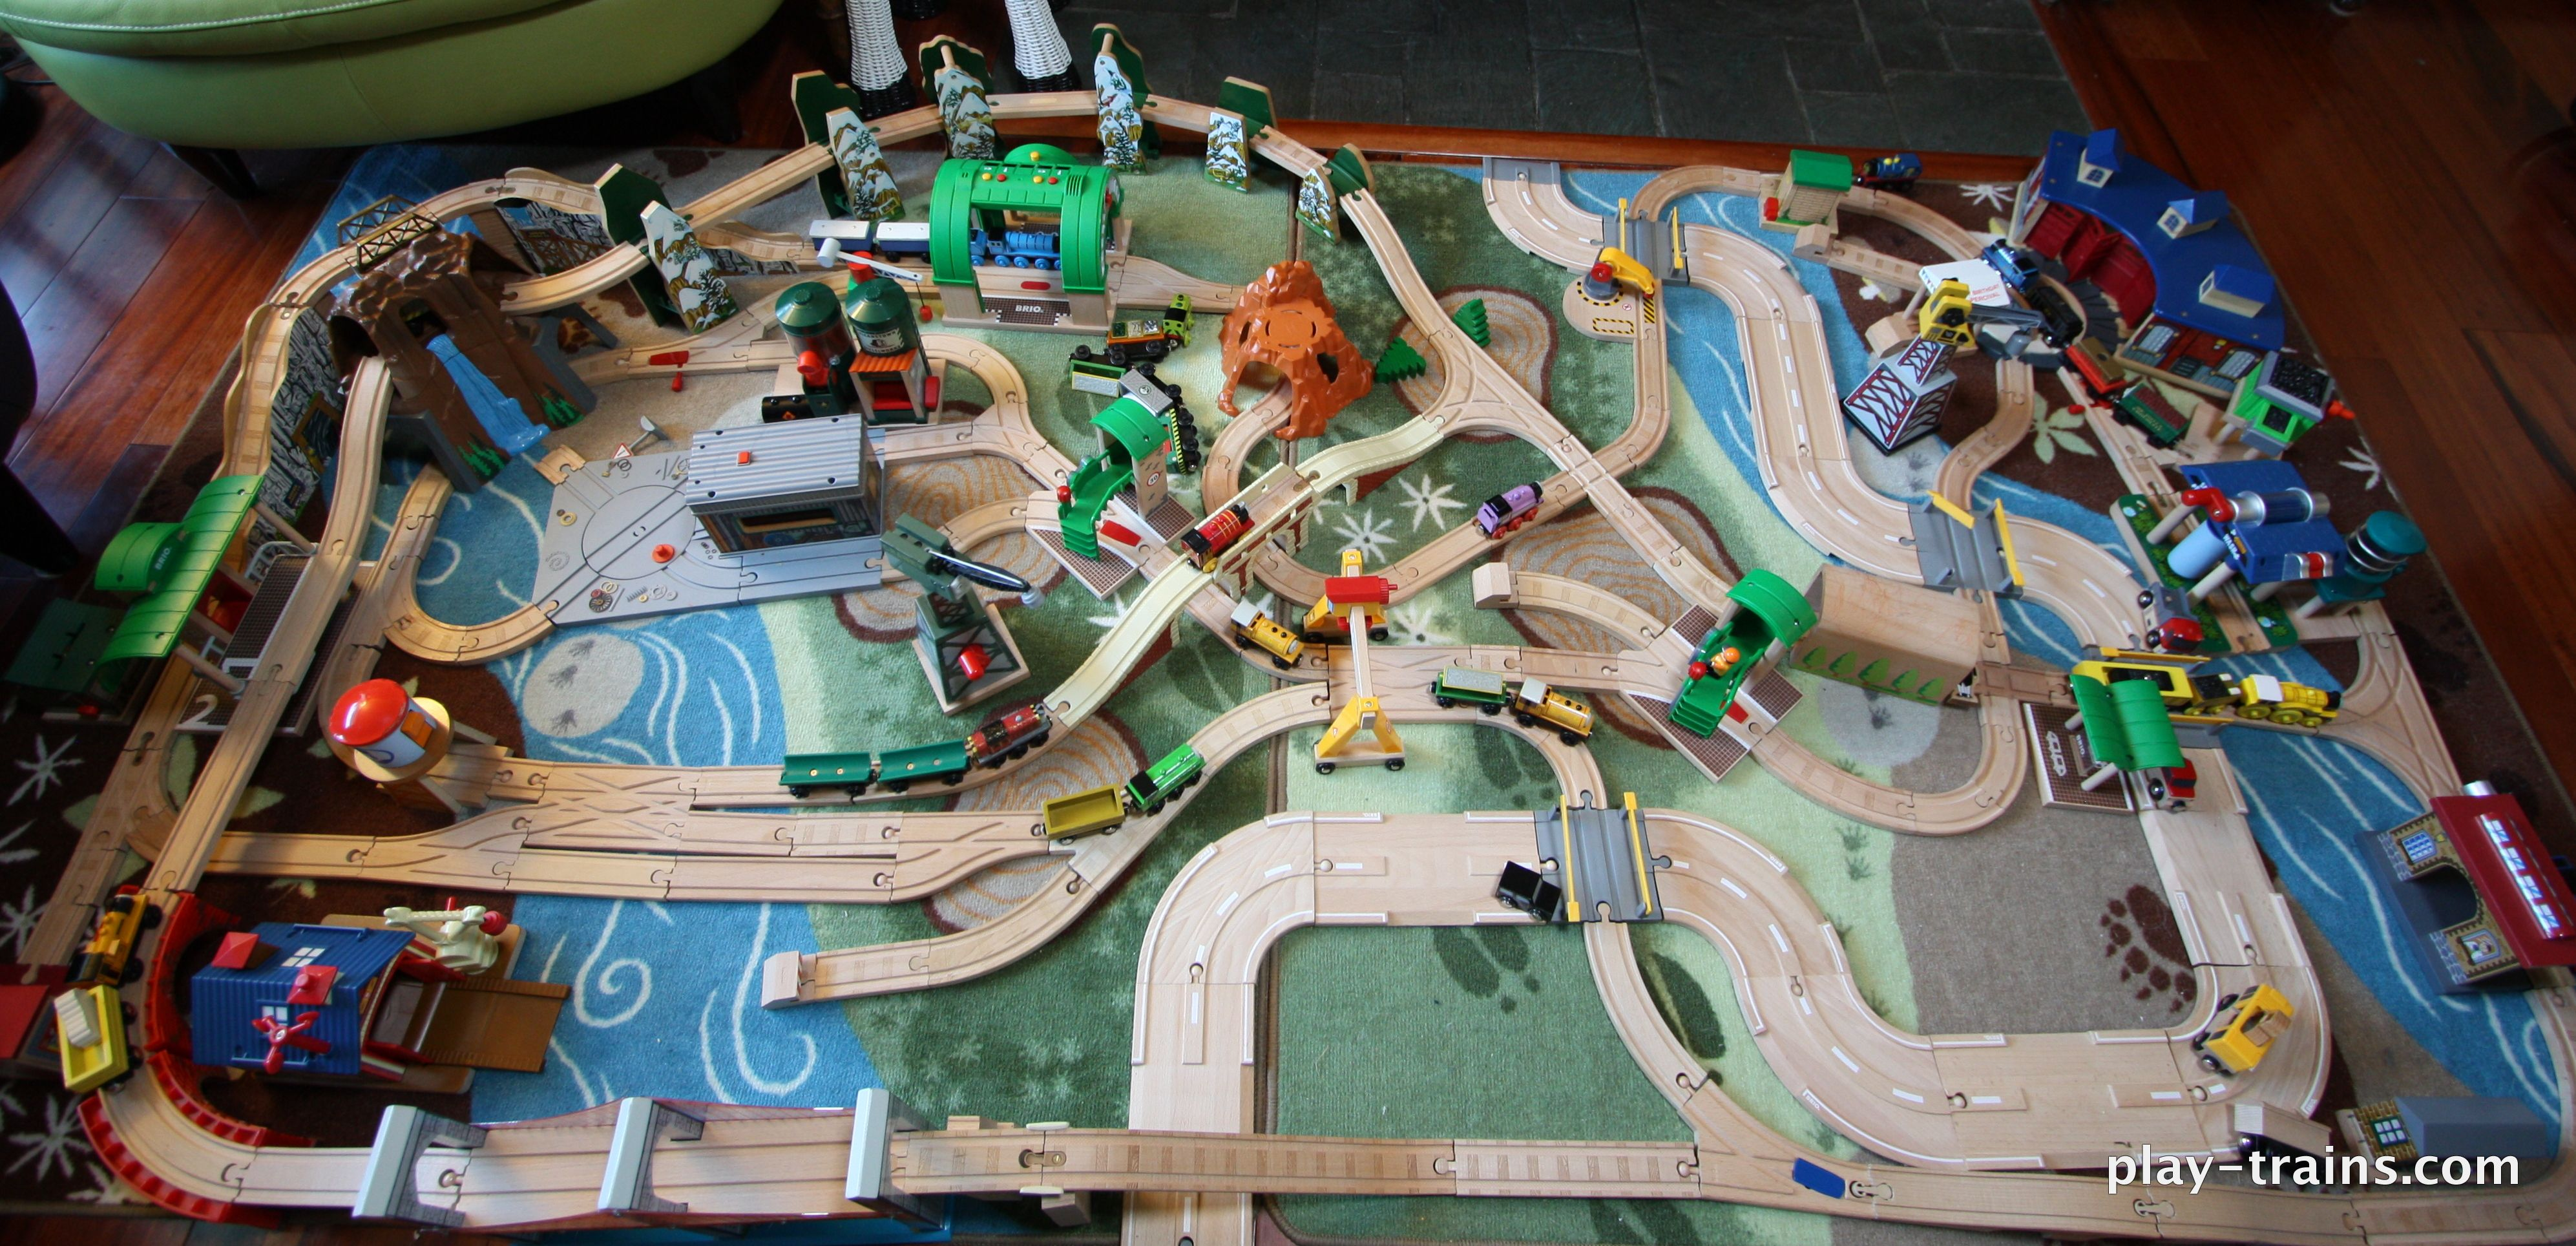 Our Latest Wooden Train Layout Inventive Toys Wooden